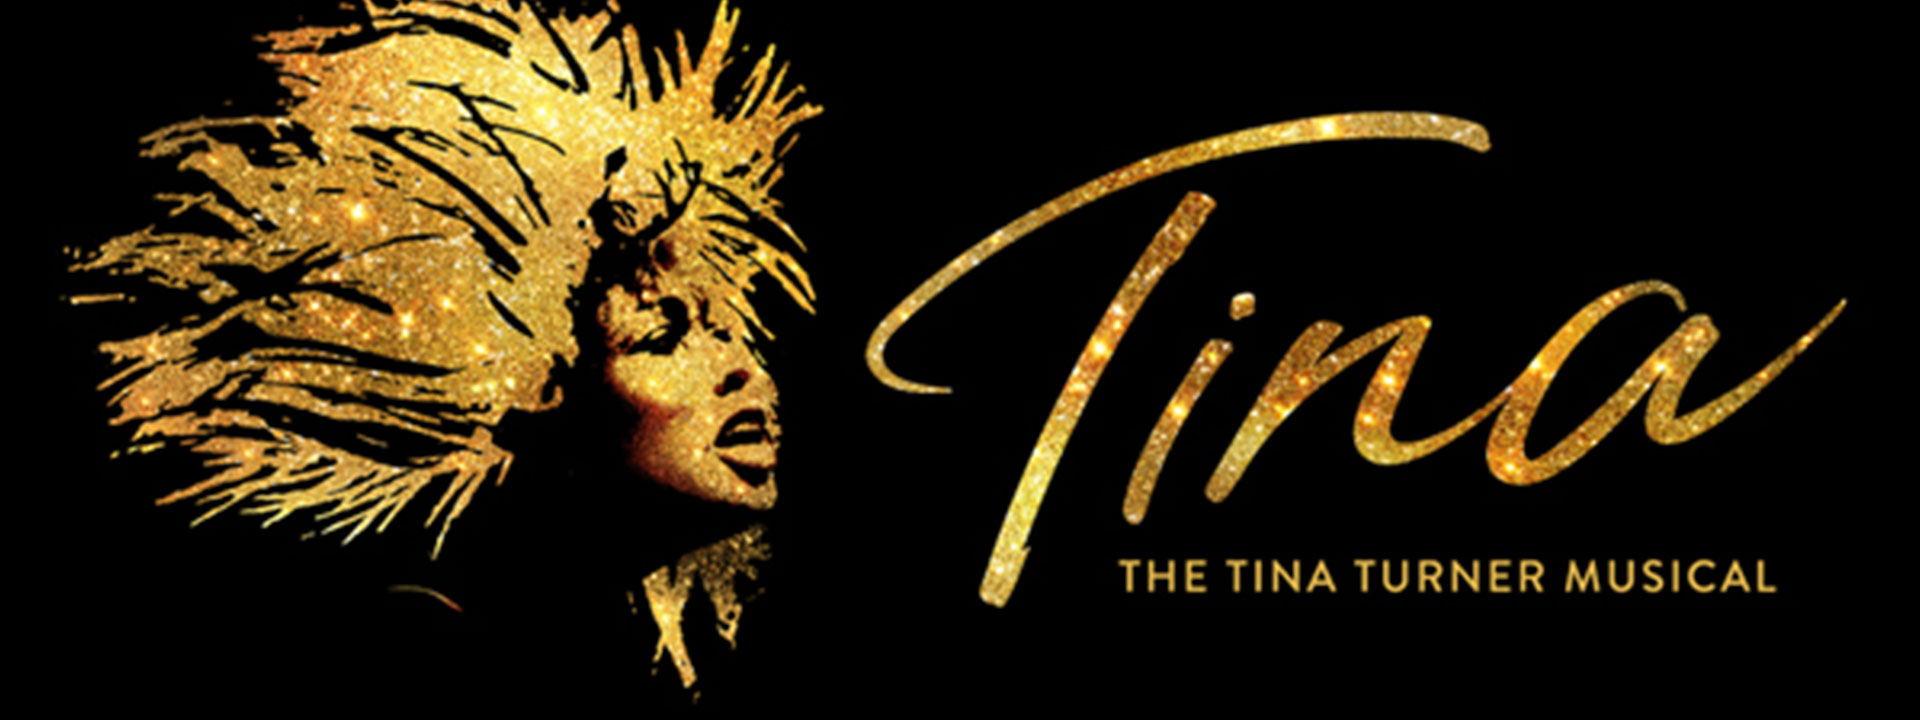 Tina Turner musical logo